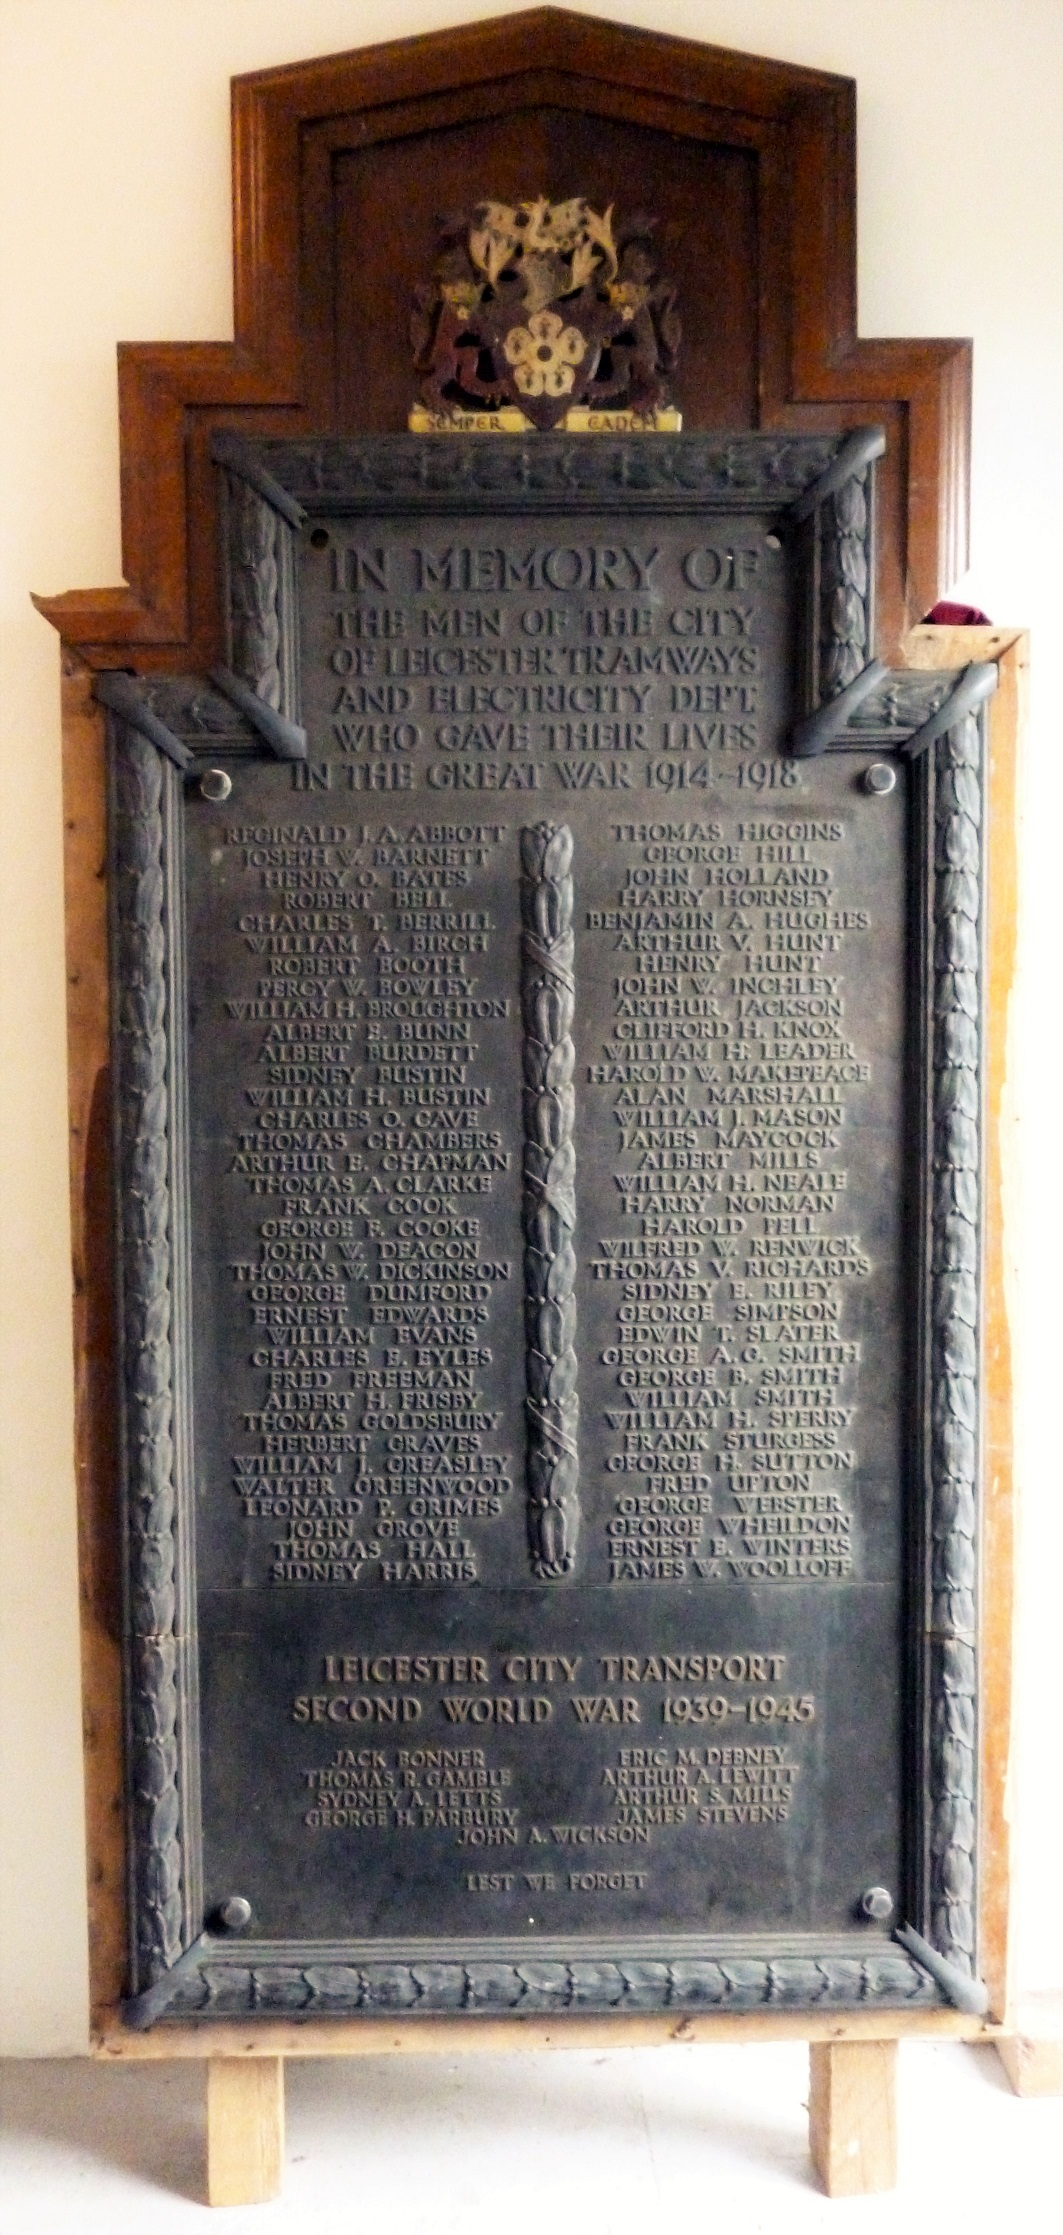 The City of Leicester Tramways and Electricity Dept. Memorial